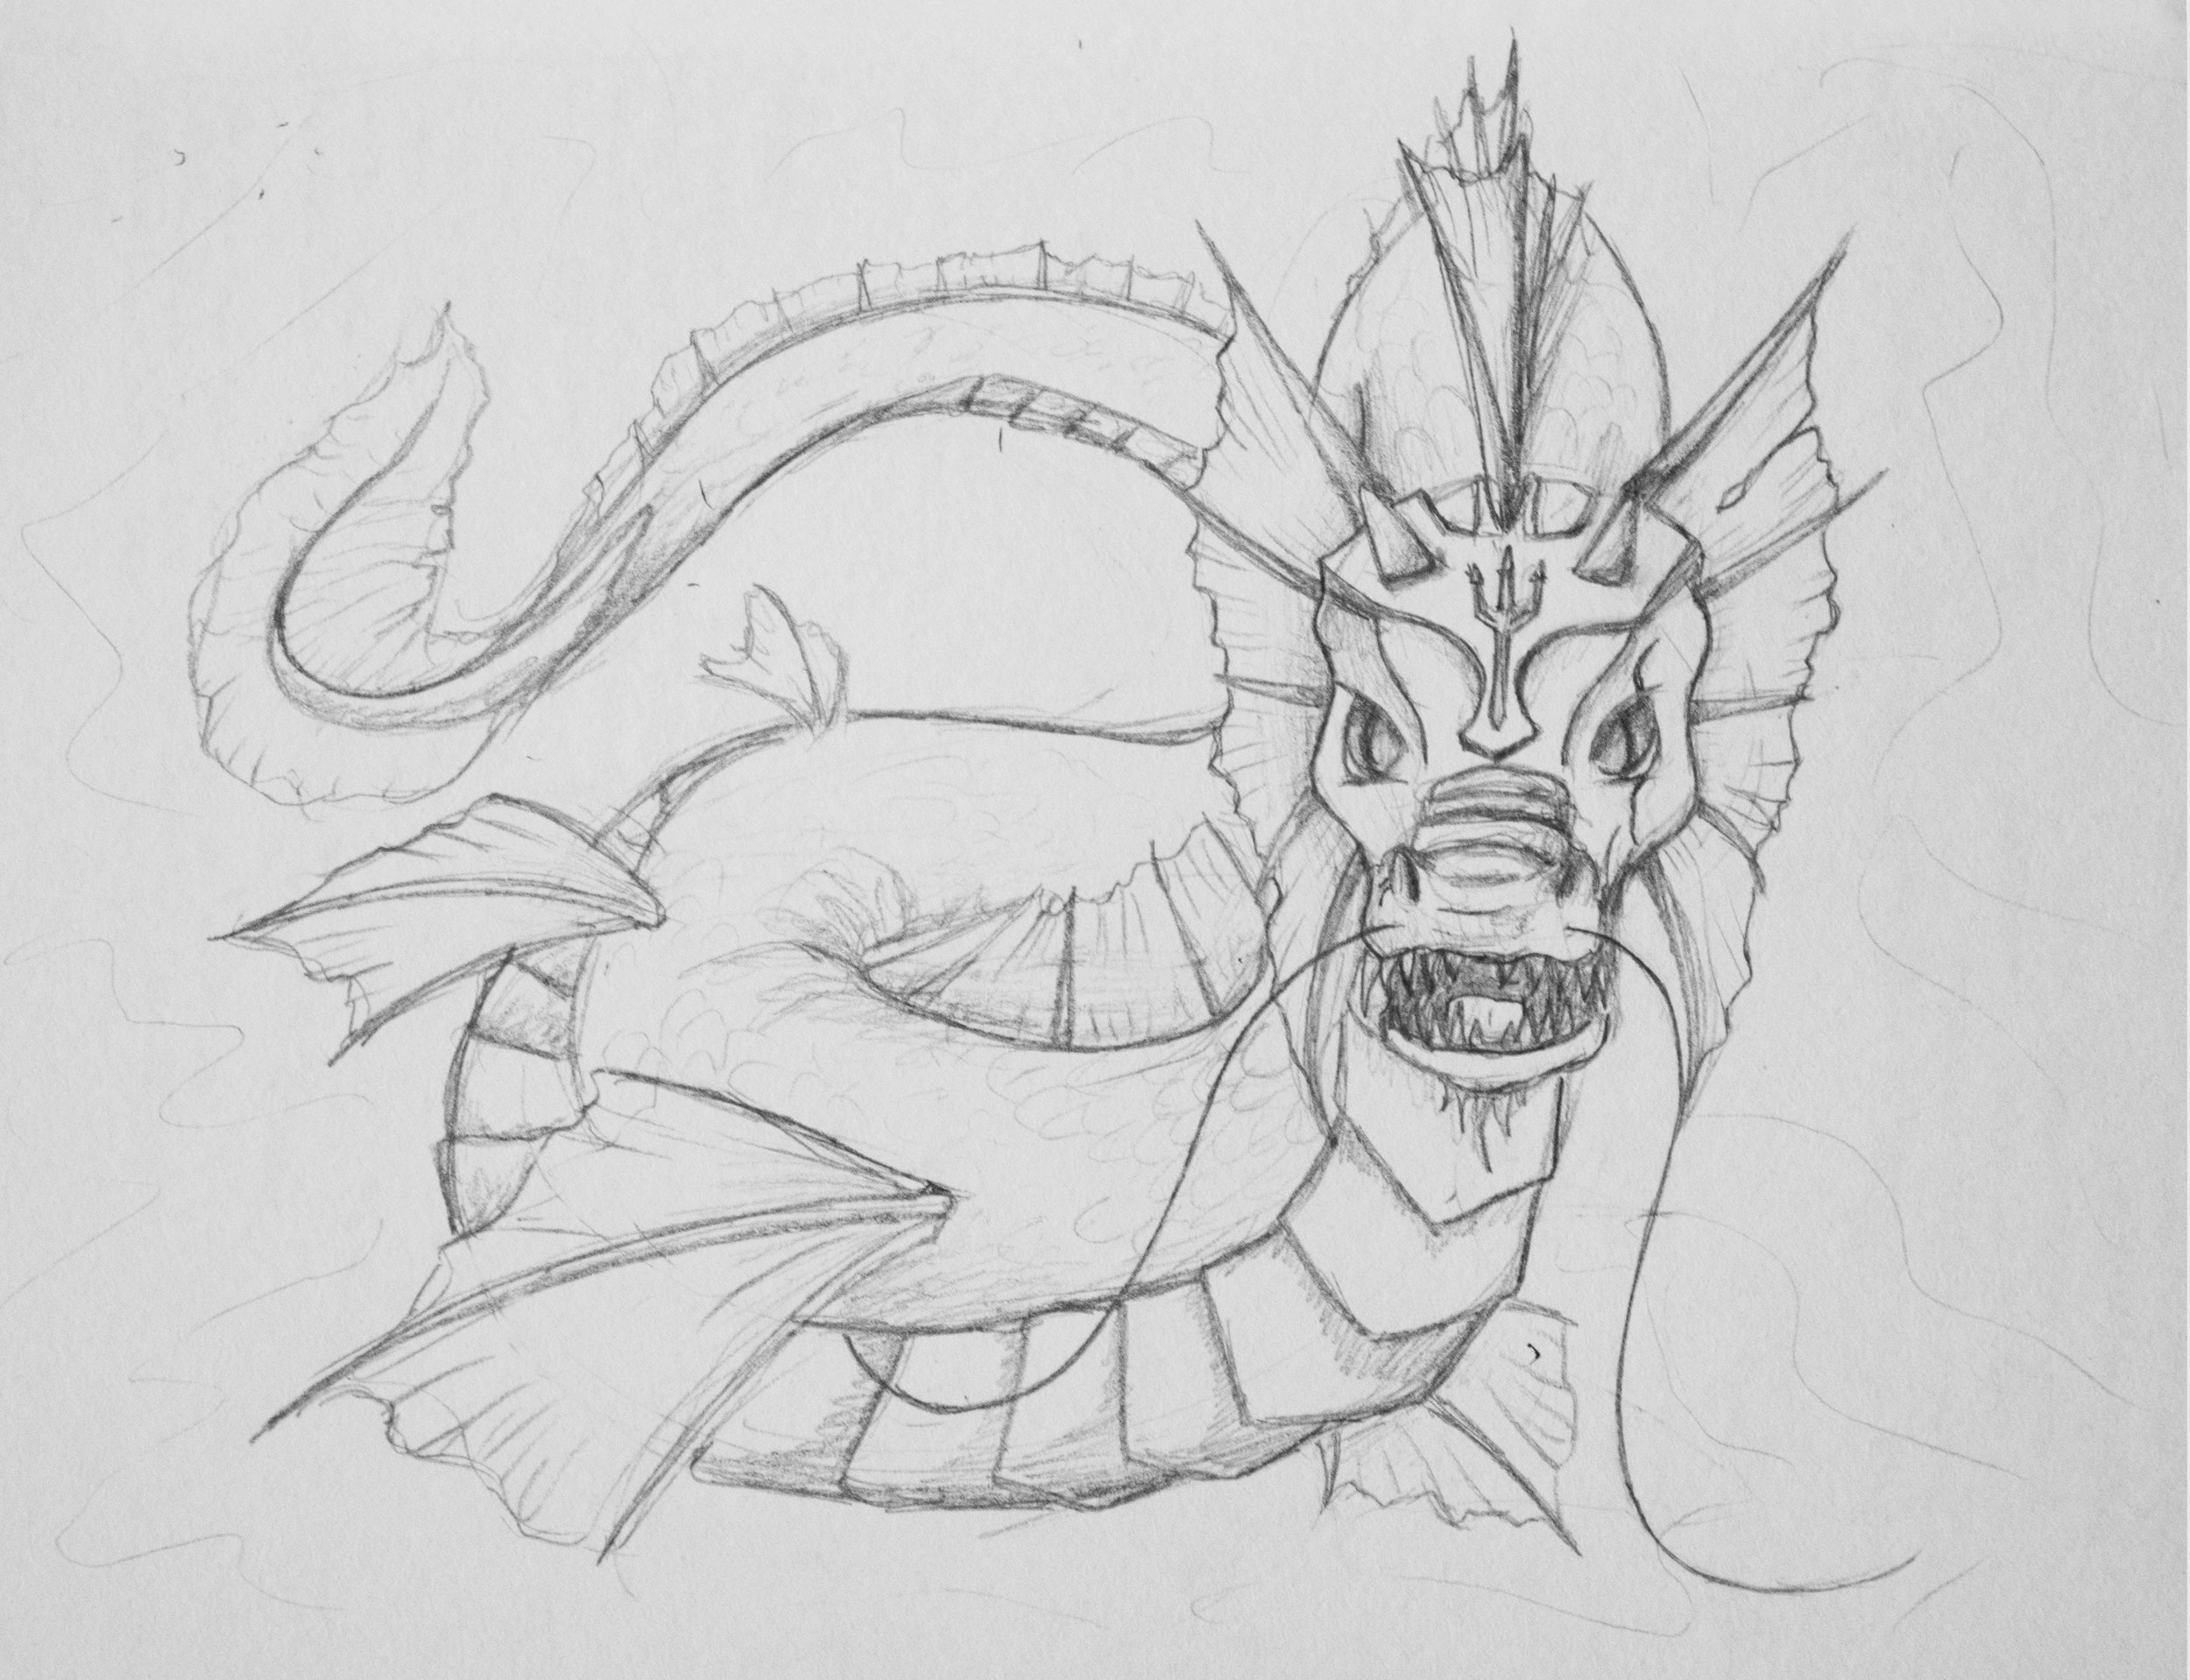 """Water - Word as Dragon""  Pencil on paper 5x7"" June 2016"